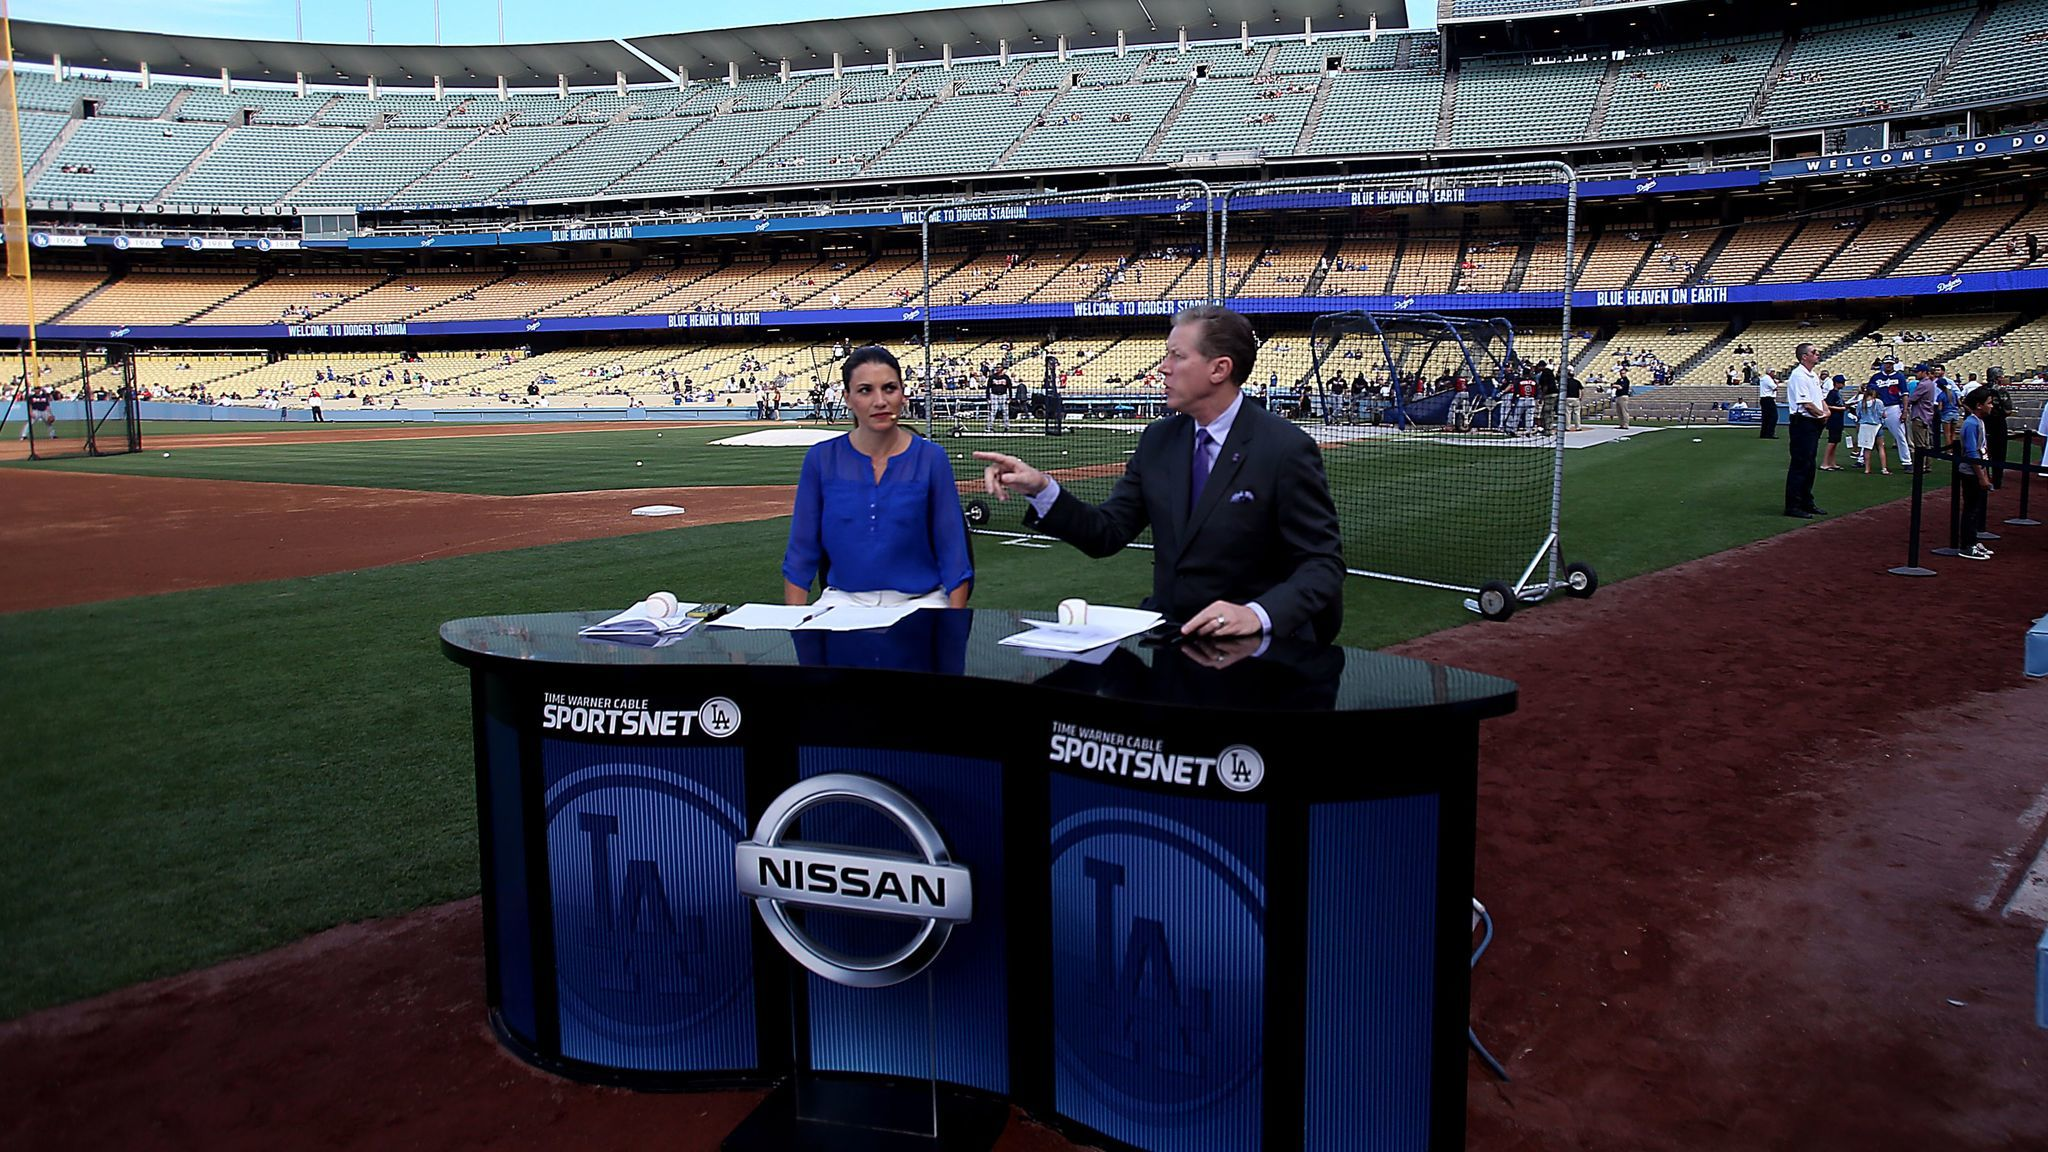 Time Warner Sportsnet Dodgers commentators Alanna Rizzo, left, and Orel Hershiser, do a pregame show before the Dodgers face the Atlanta Braves.